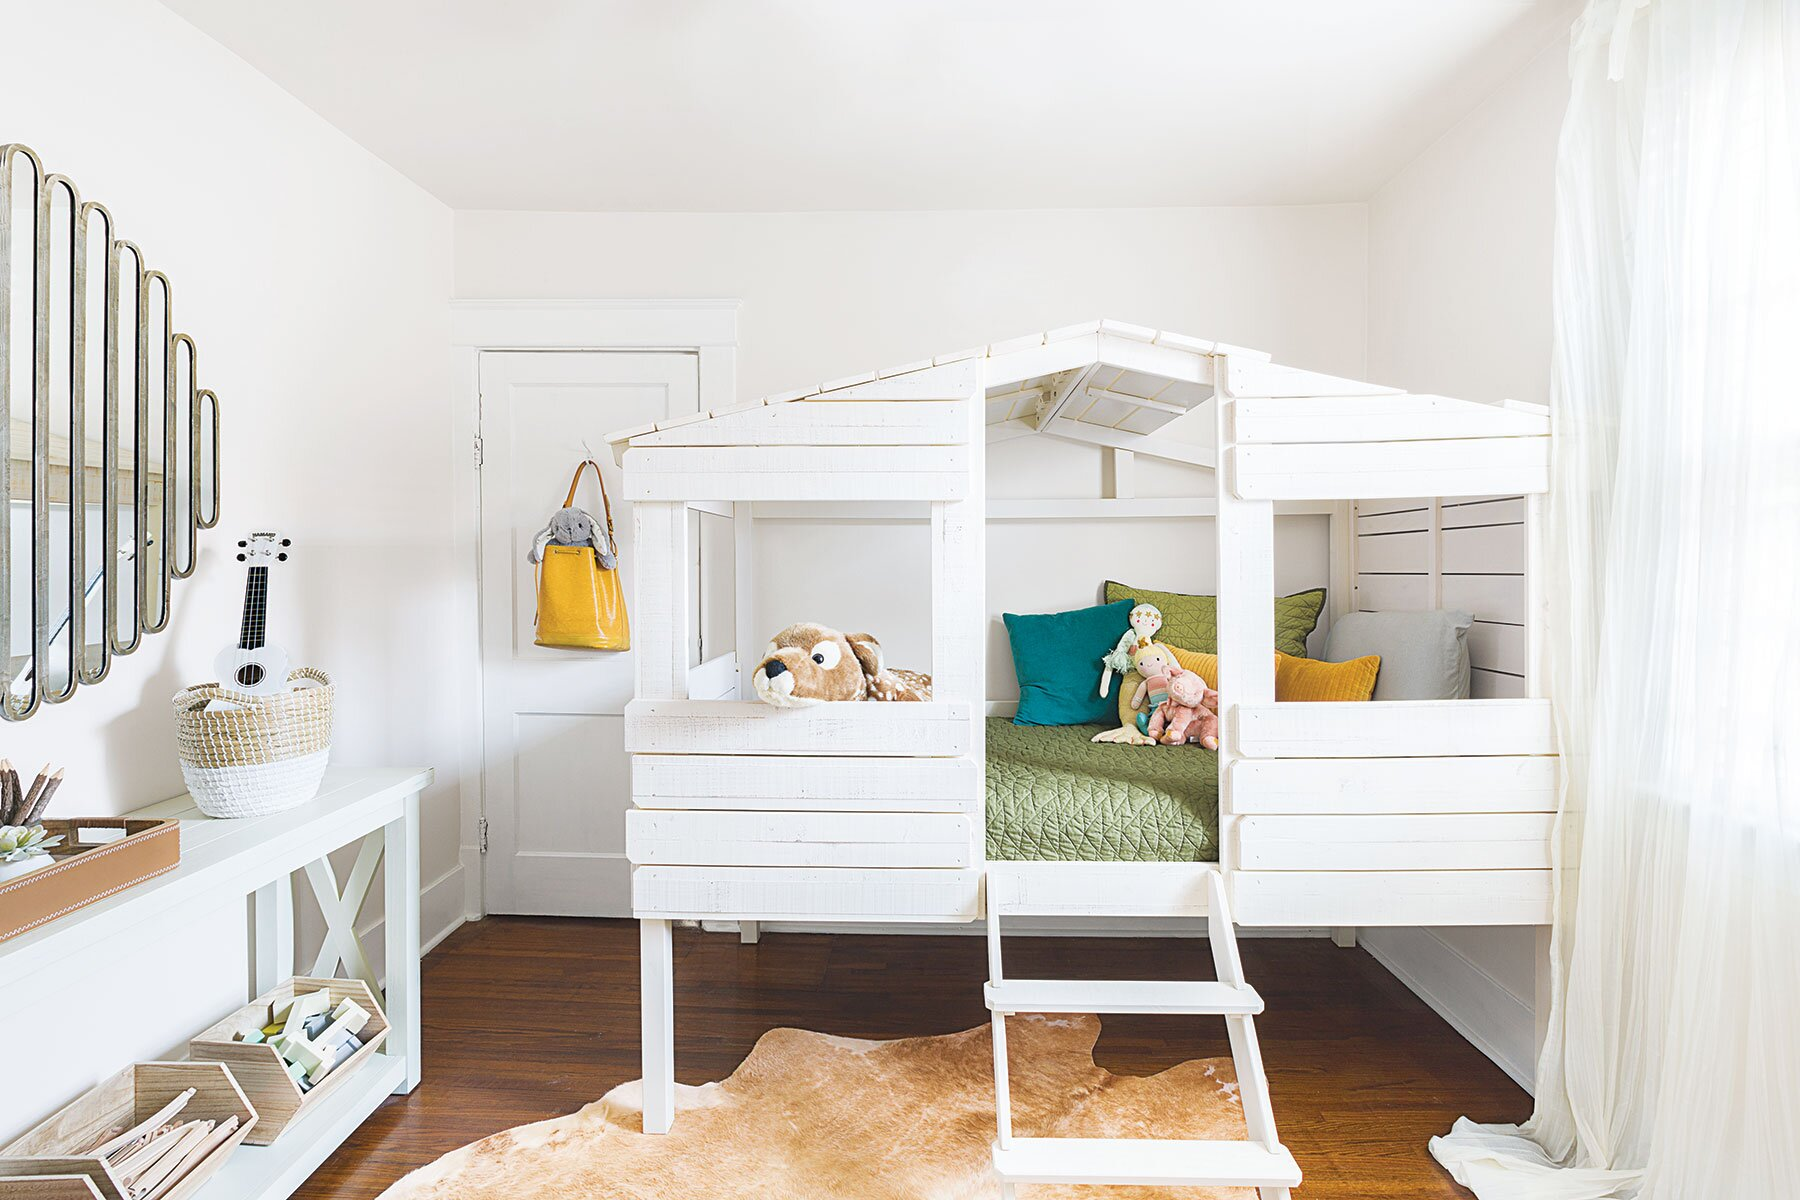 17 Kids Room Decorating Ideas To Create A Hy Organized